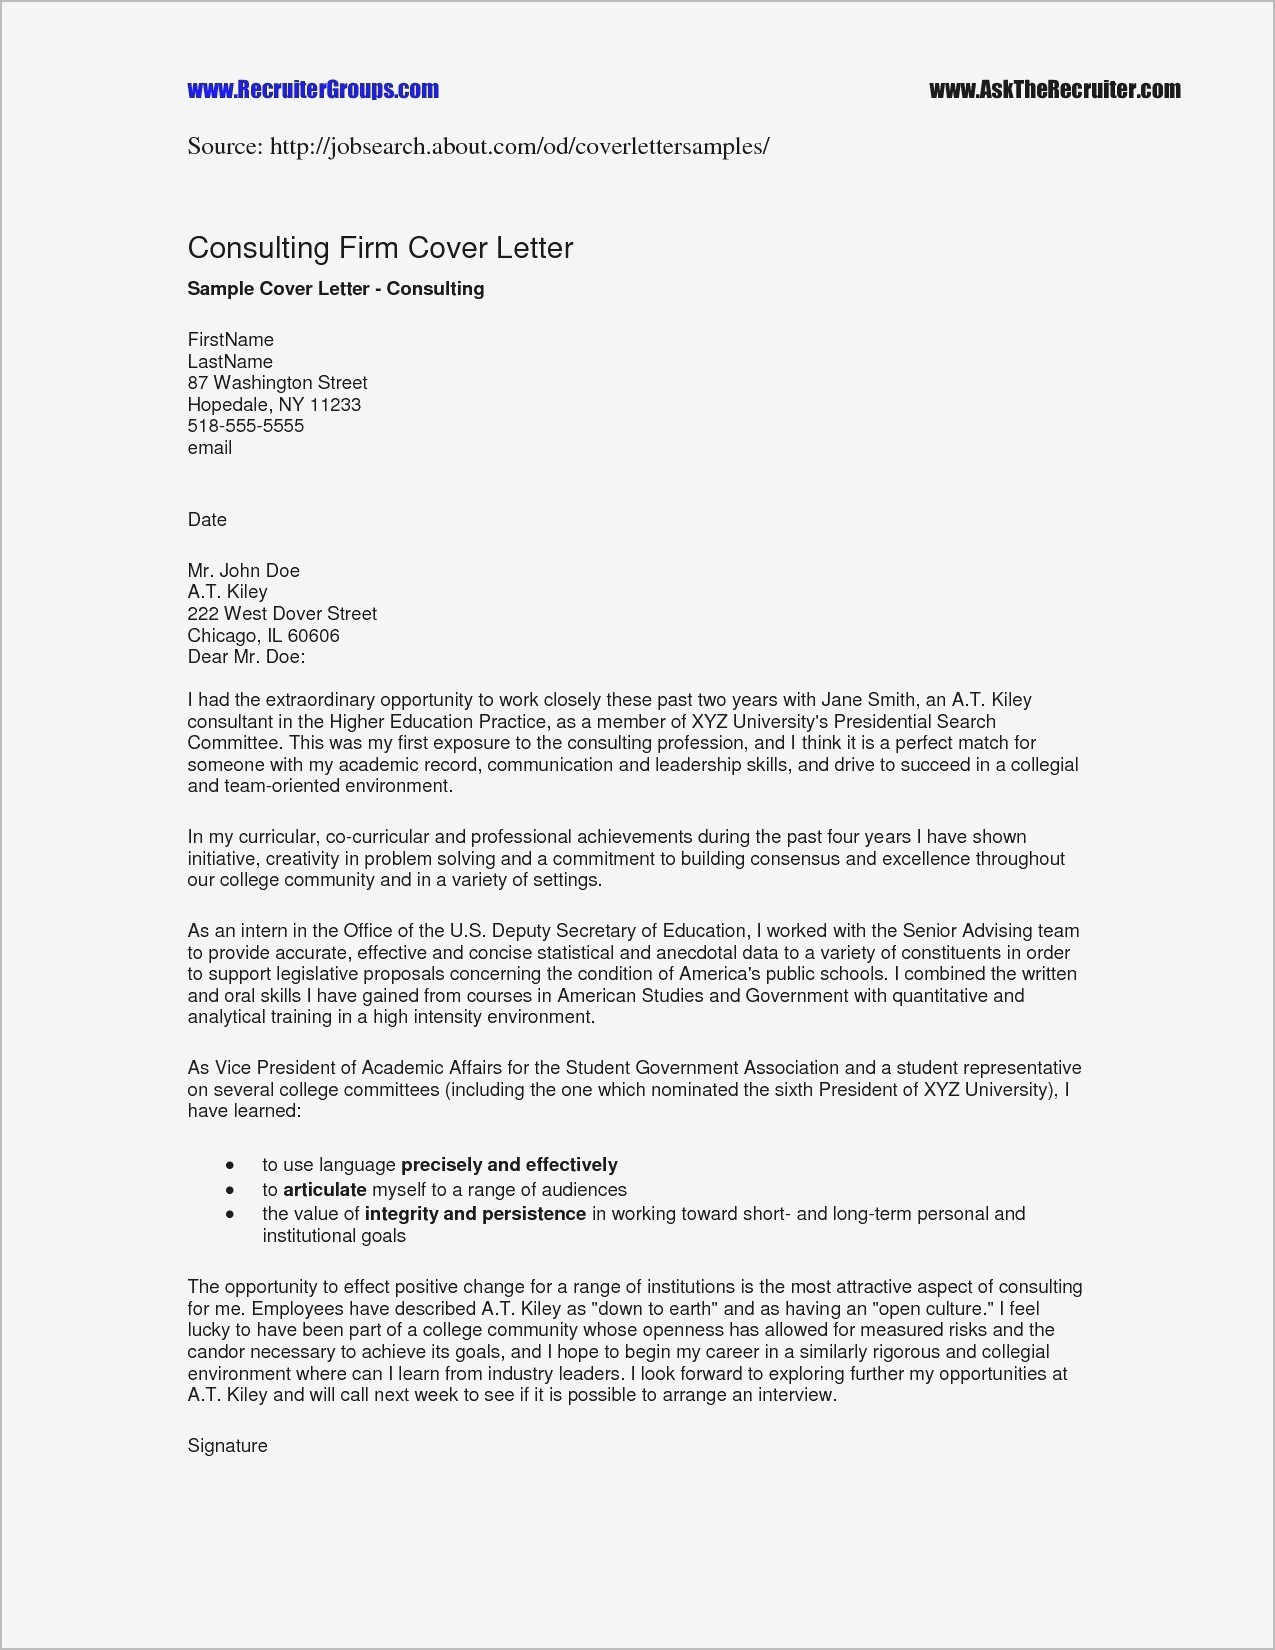 Cover Letter Template Retail Manager - Cover Letter Template for Retail Management Position Fresh Retail